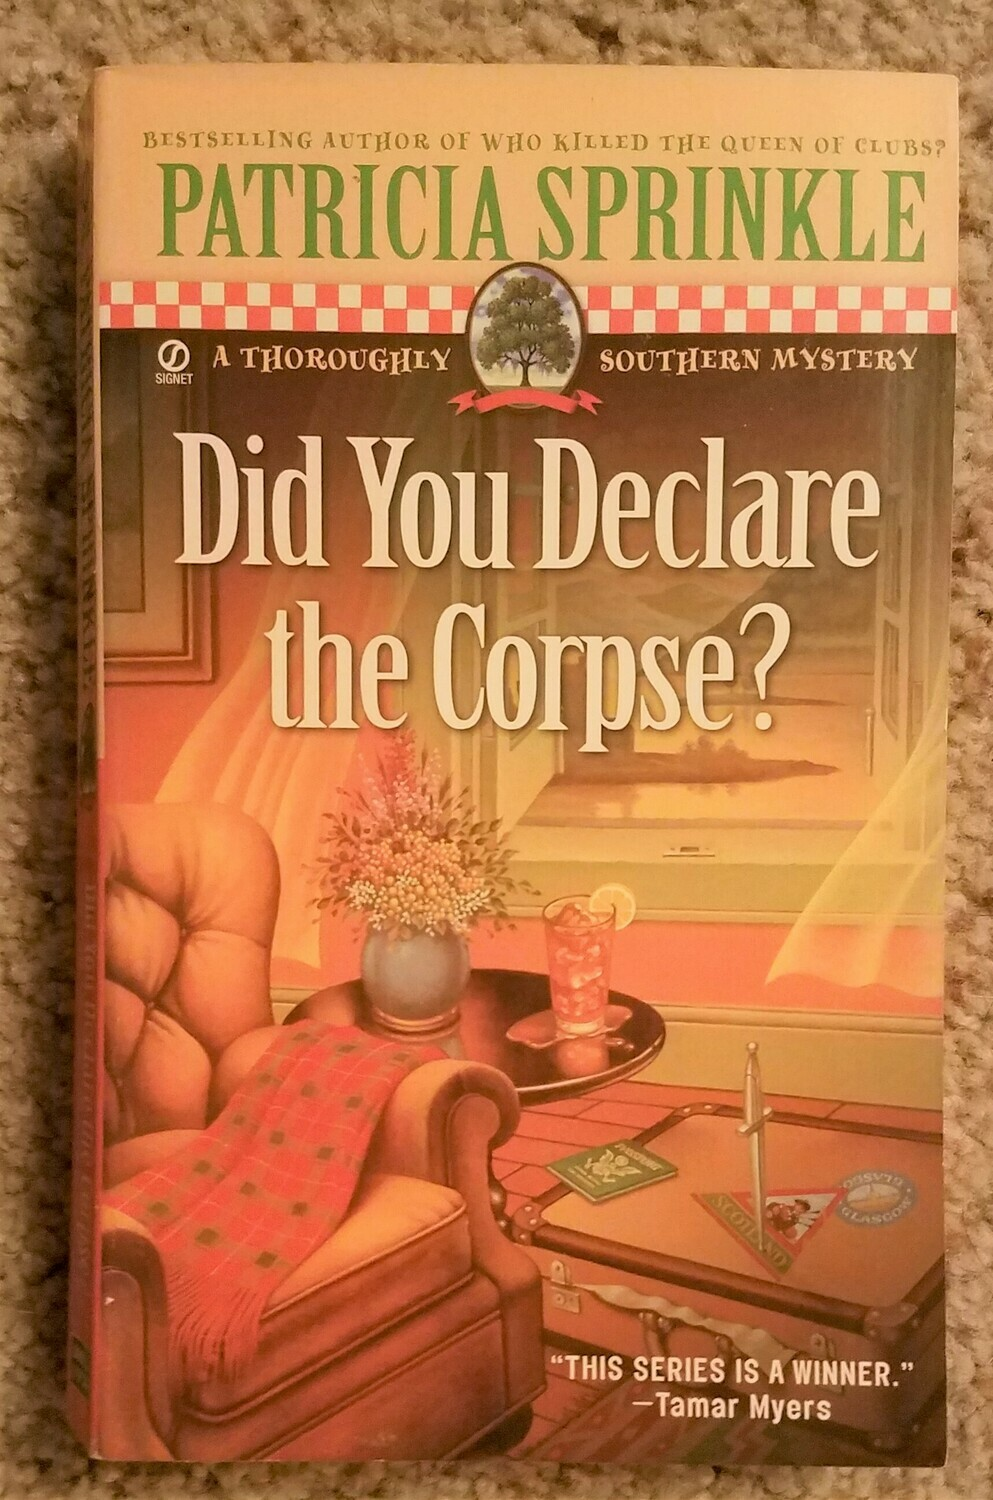 Did You Declare the Corpse? by Patricia Sprinkle